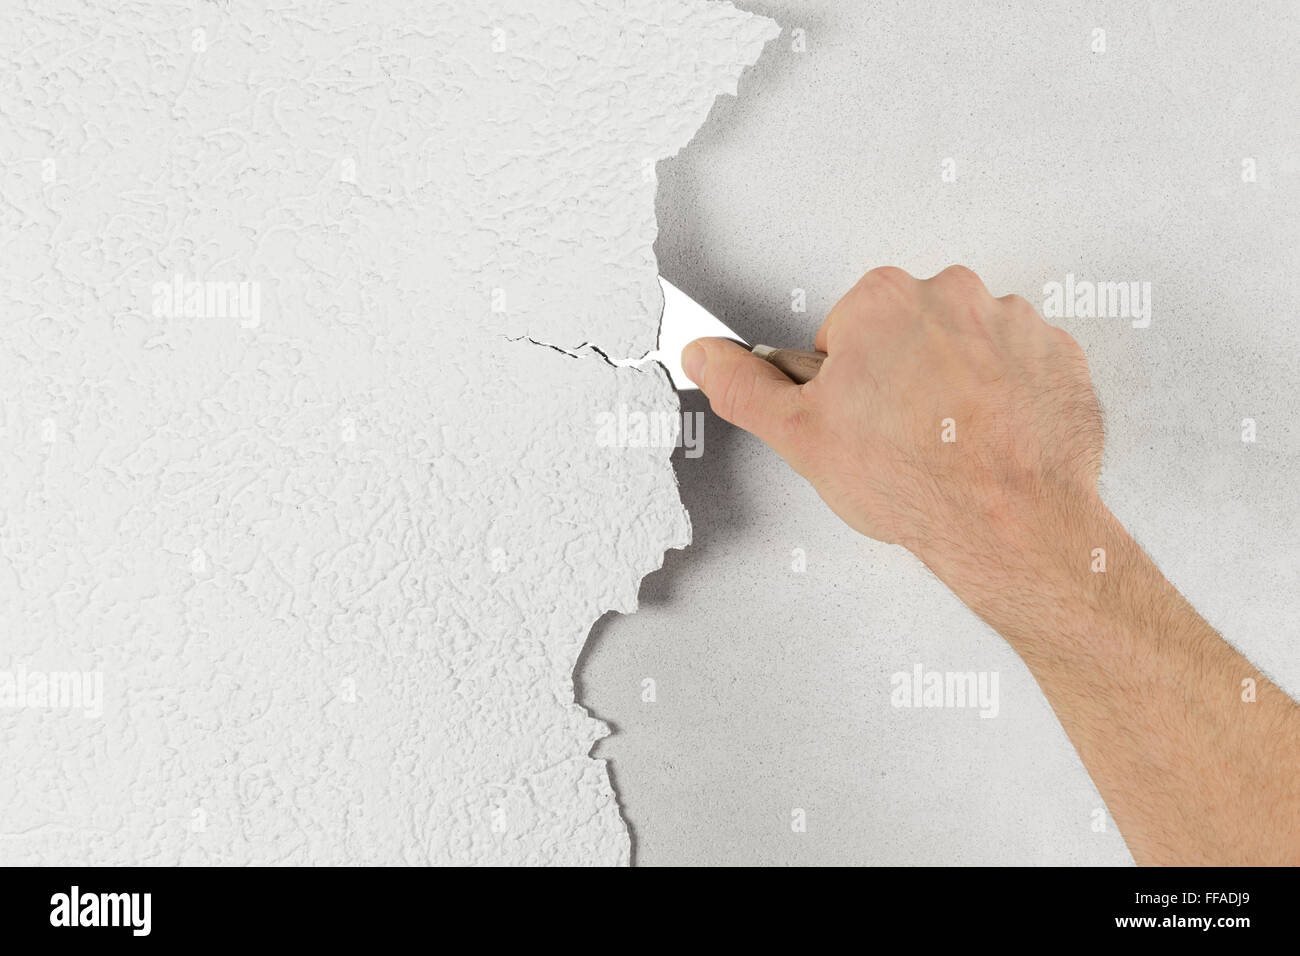 plaster removal with hand and spatula - Stock Image